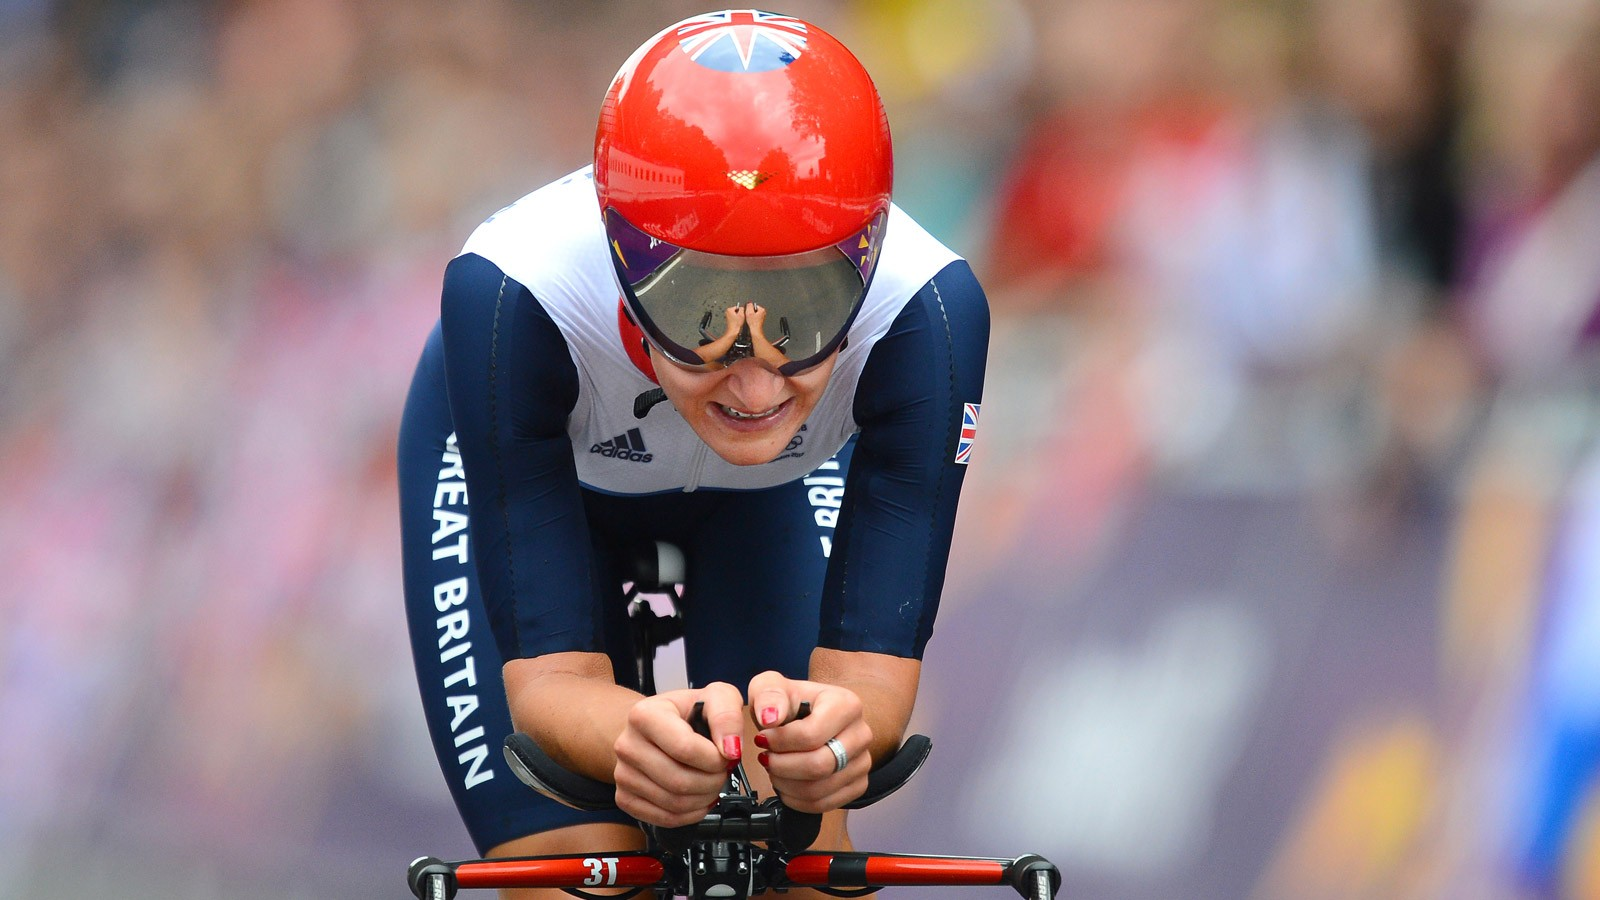 Timing is crucial, explains sprinting queen Lizzie Armitstead